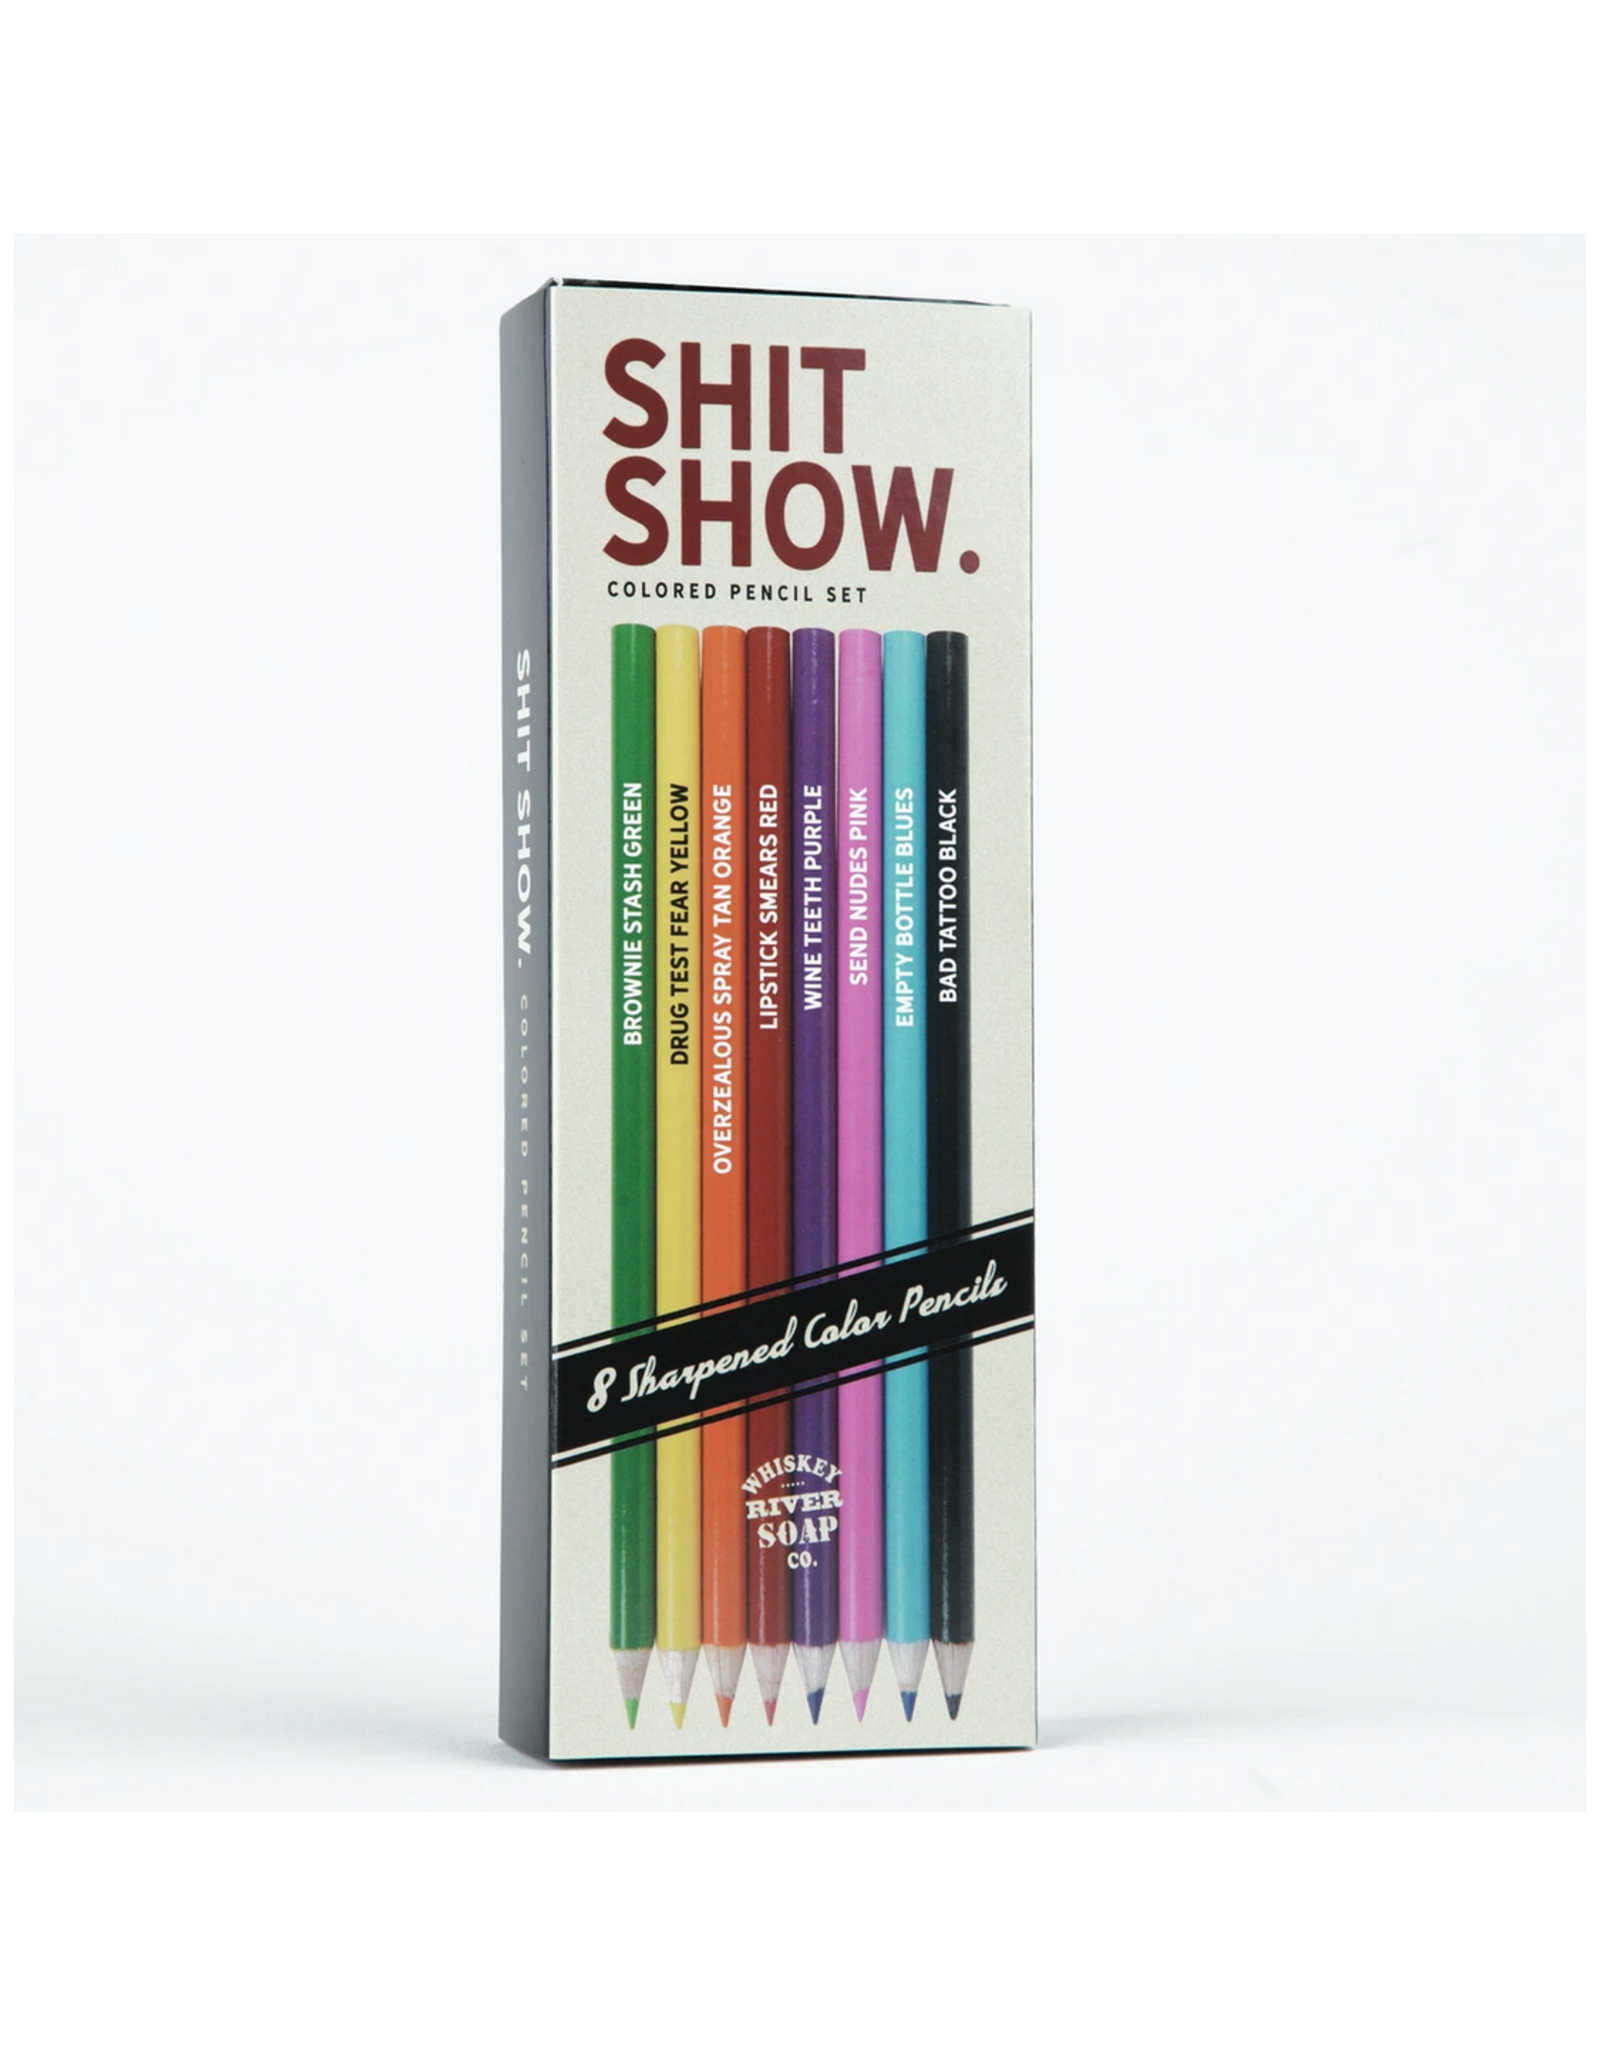 Shit Shows Colored Pencils